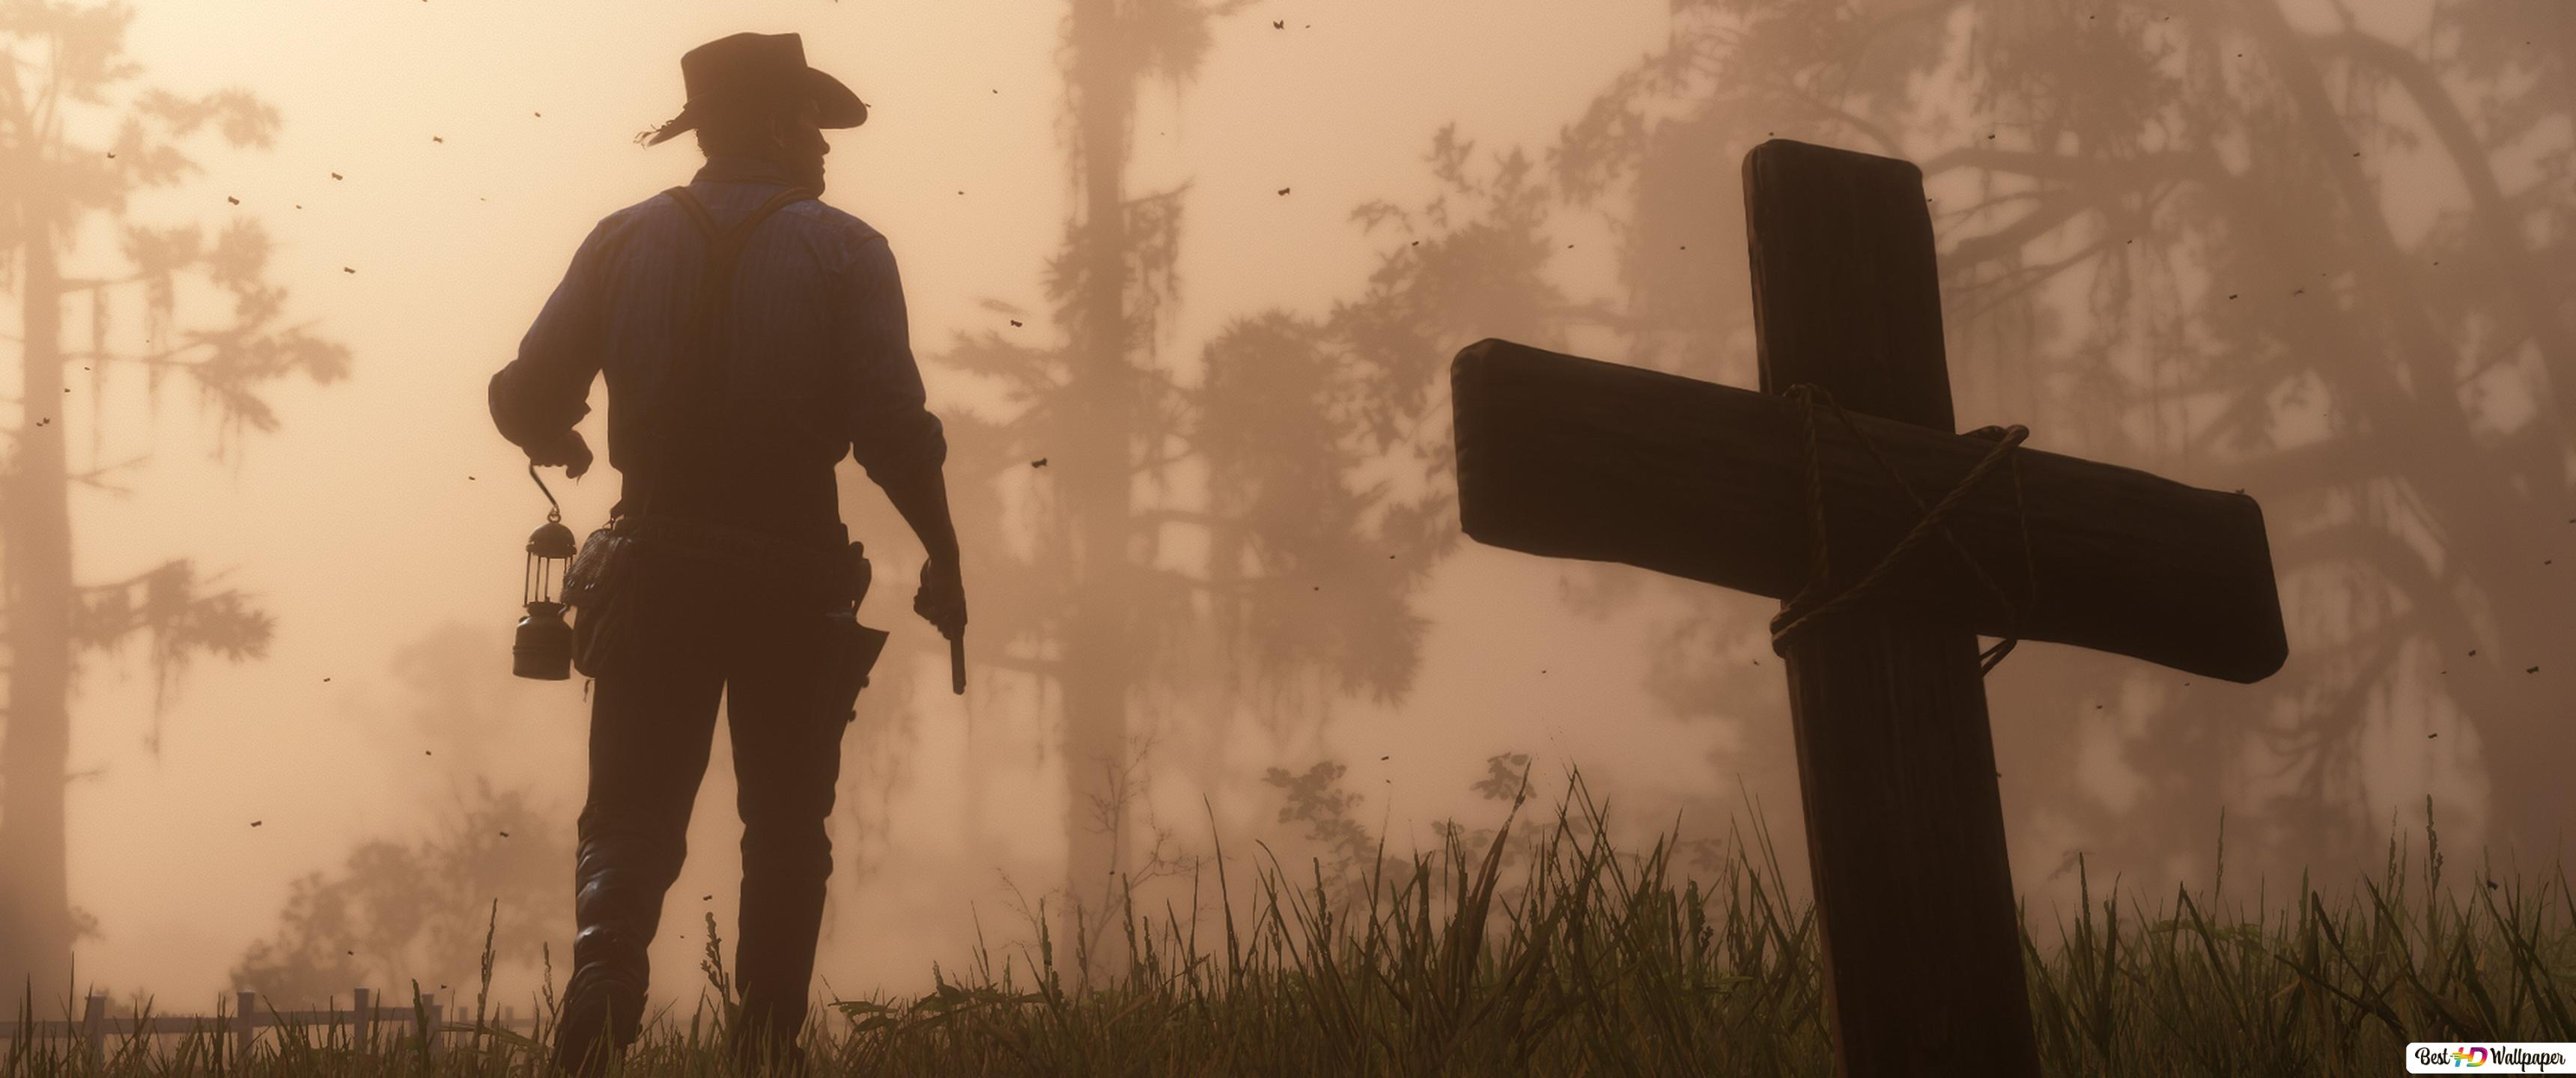 Rest In Peace At Red Dead Redemption Hd Wallpaper Download